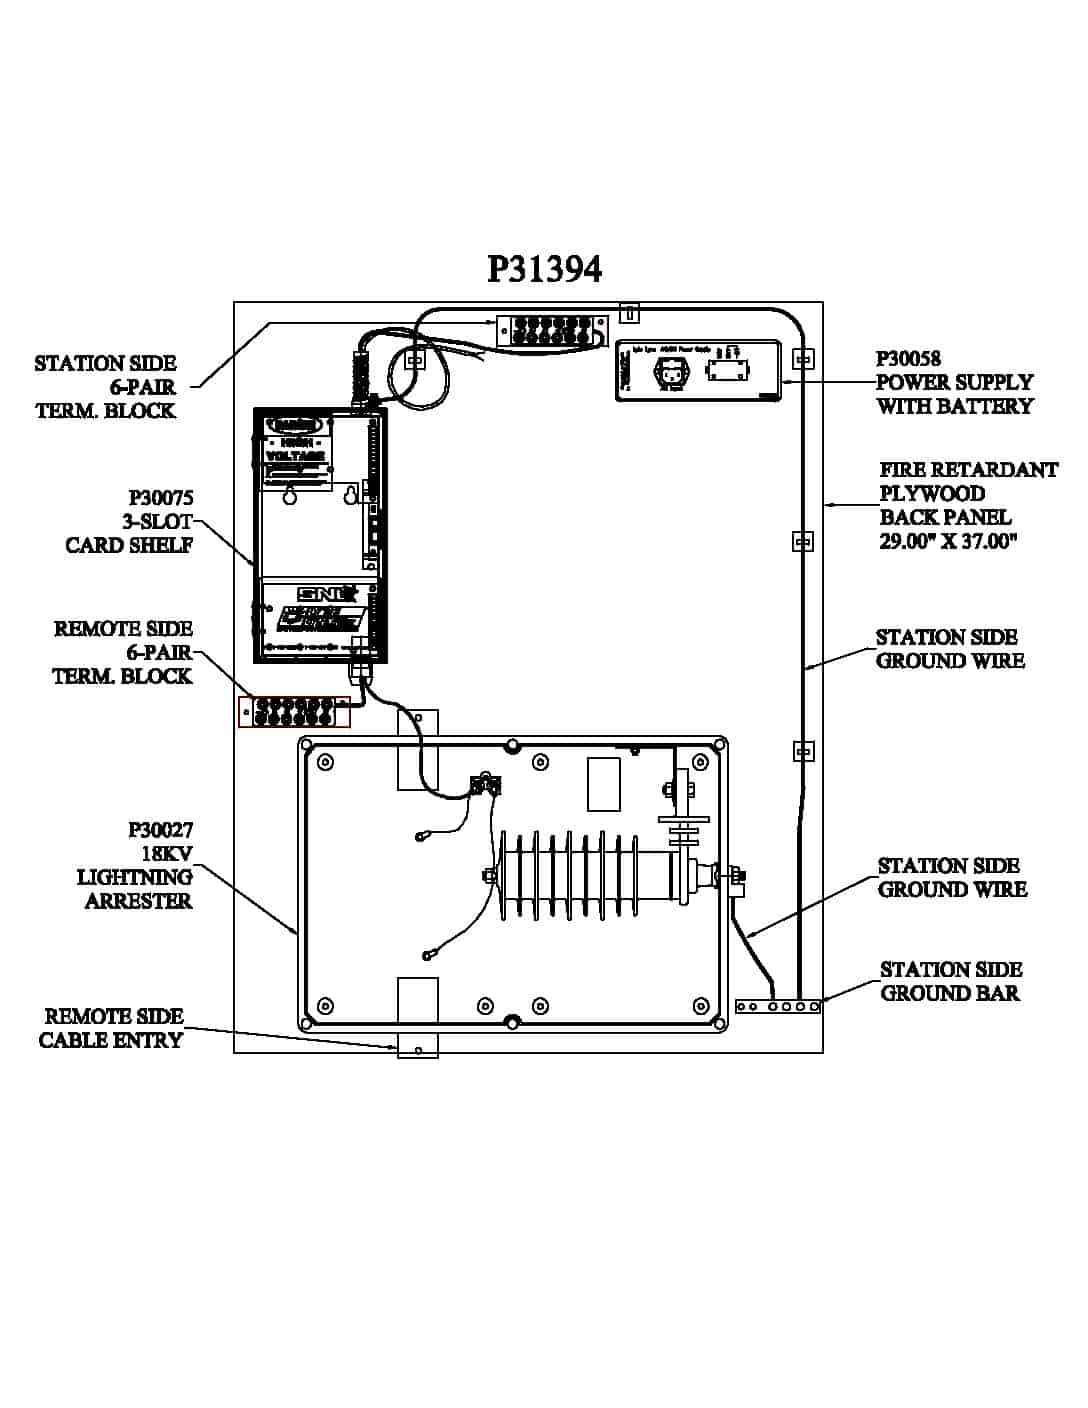 P31394 Turnkey Protection Packages – 3 slot PDF thumbnail